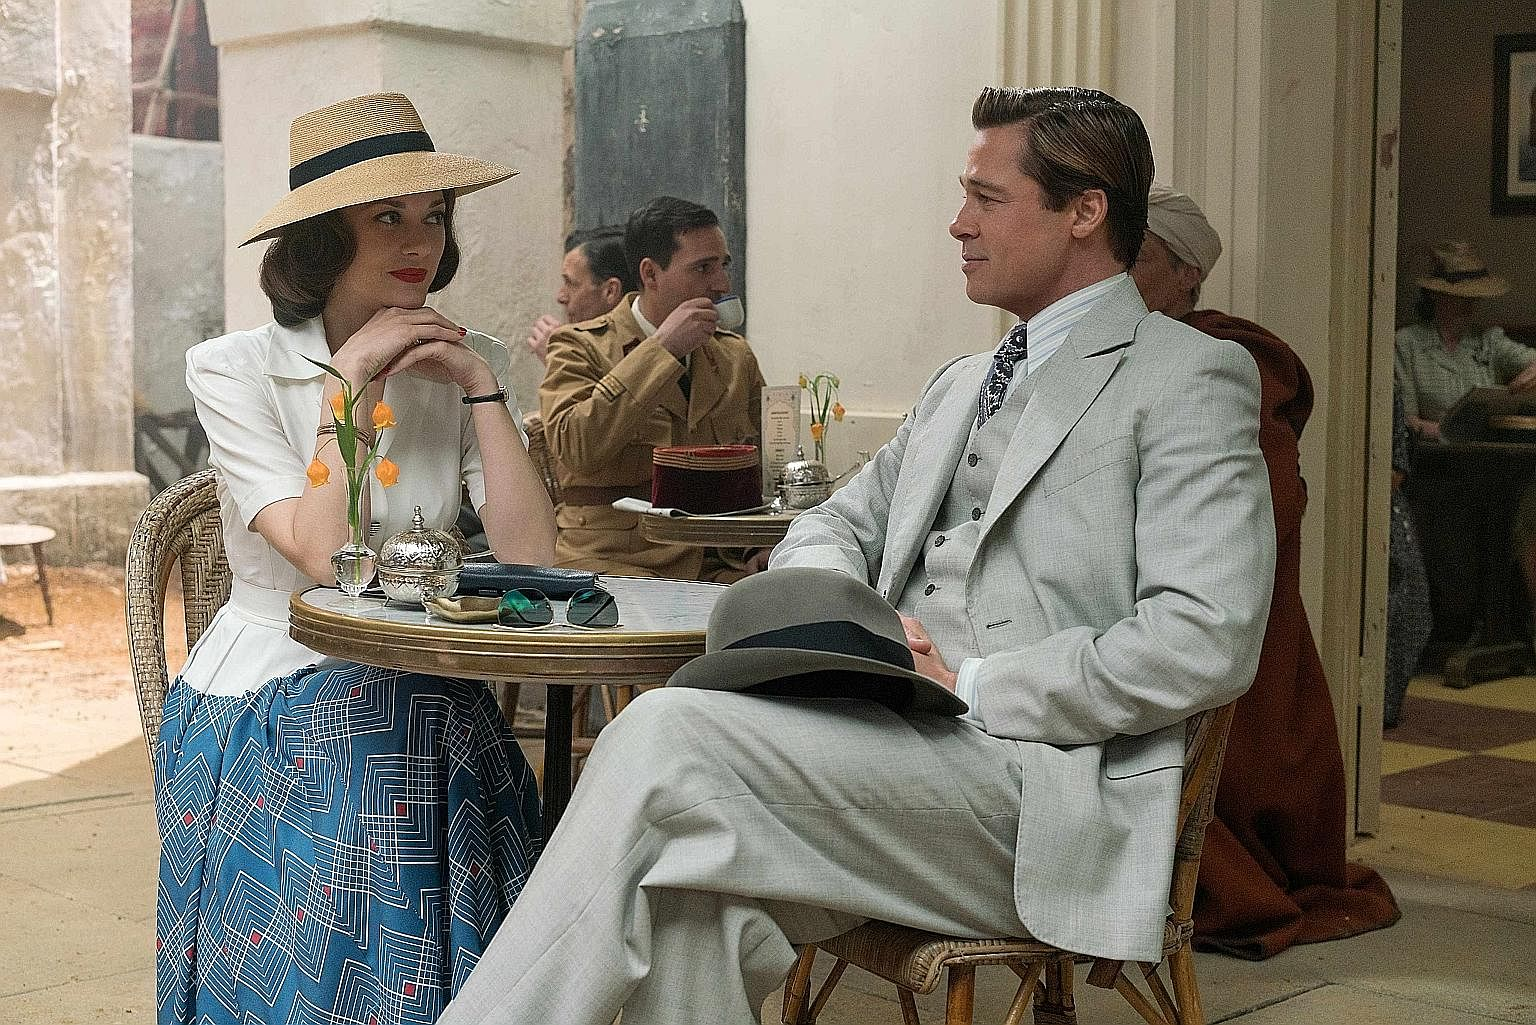 Movie reviews: Brad Pitt looks too good in Allied to come